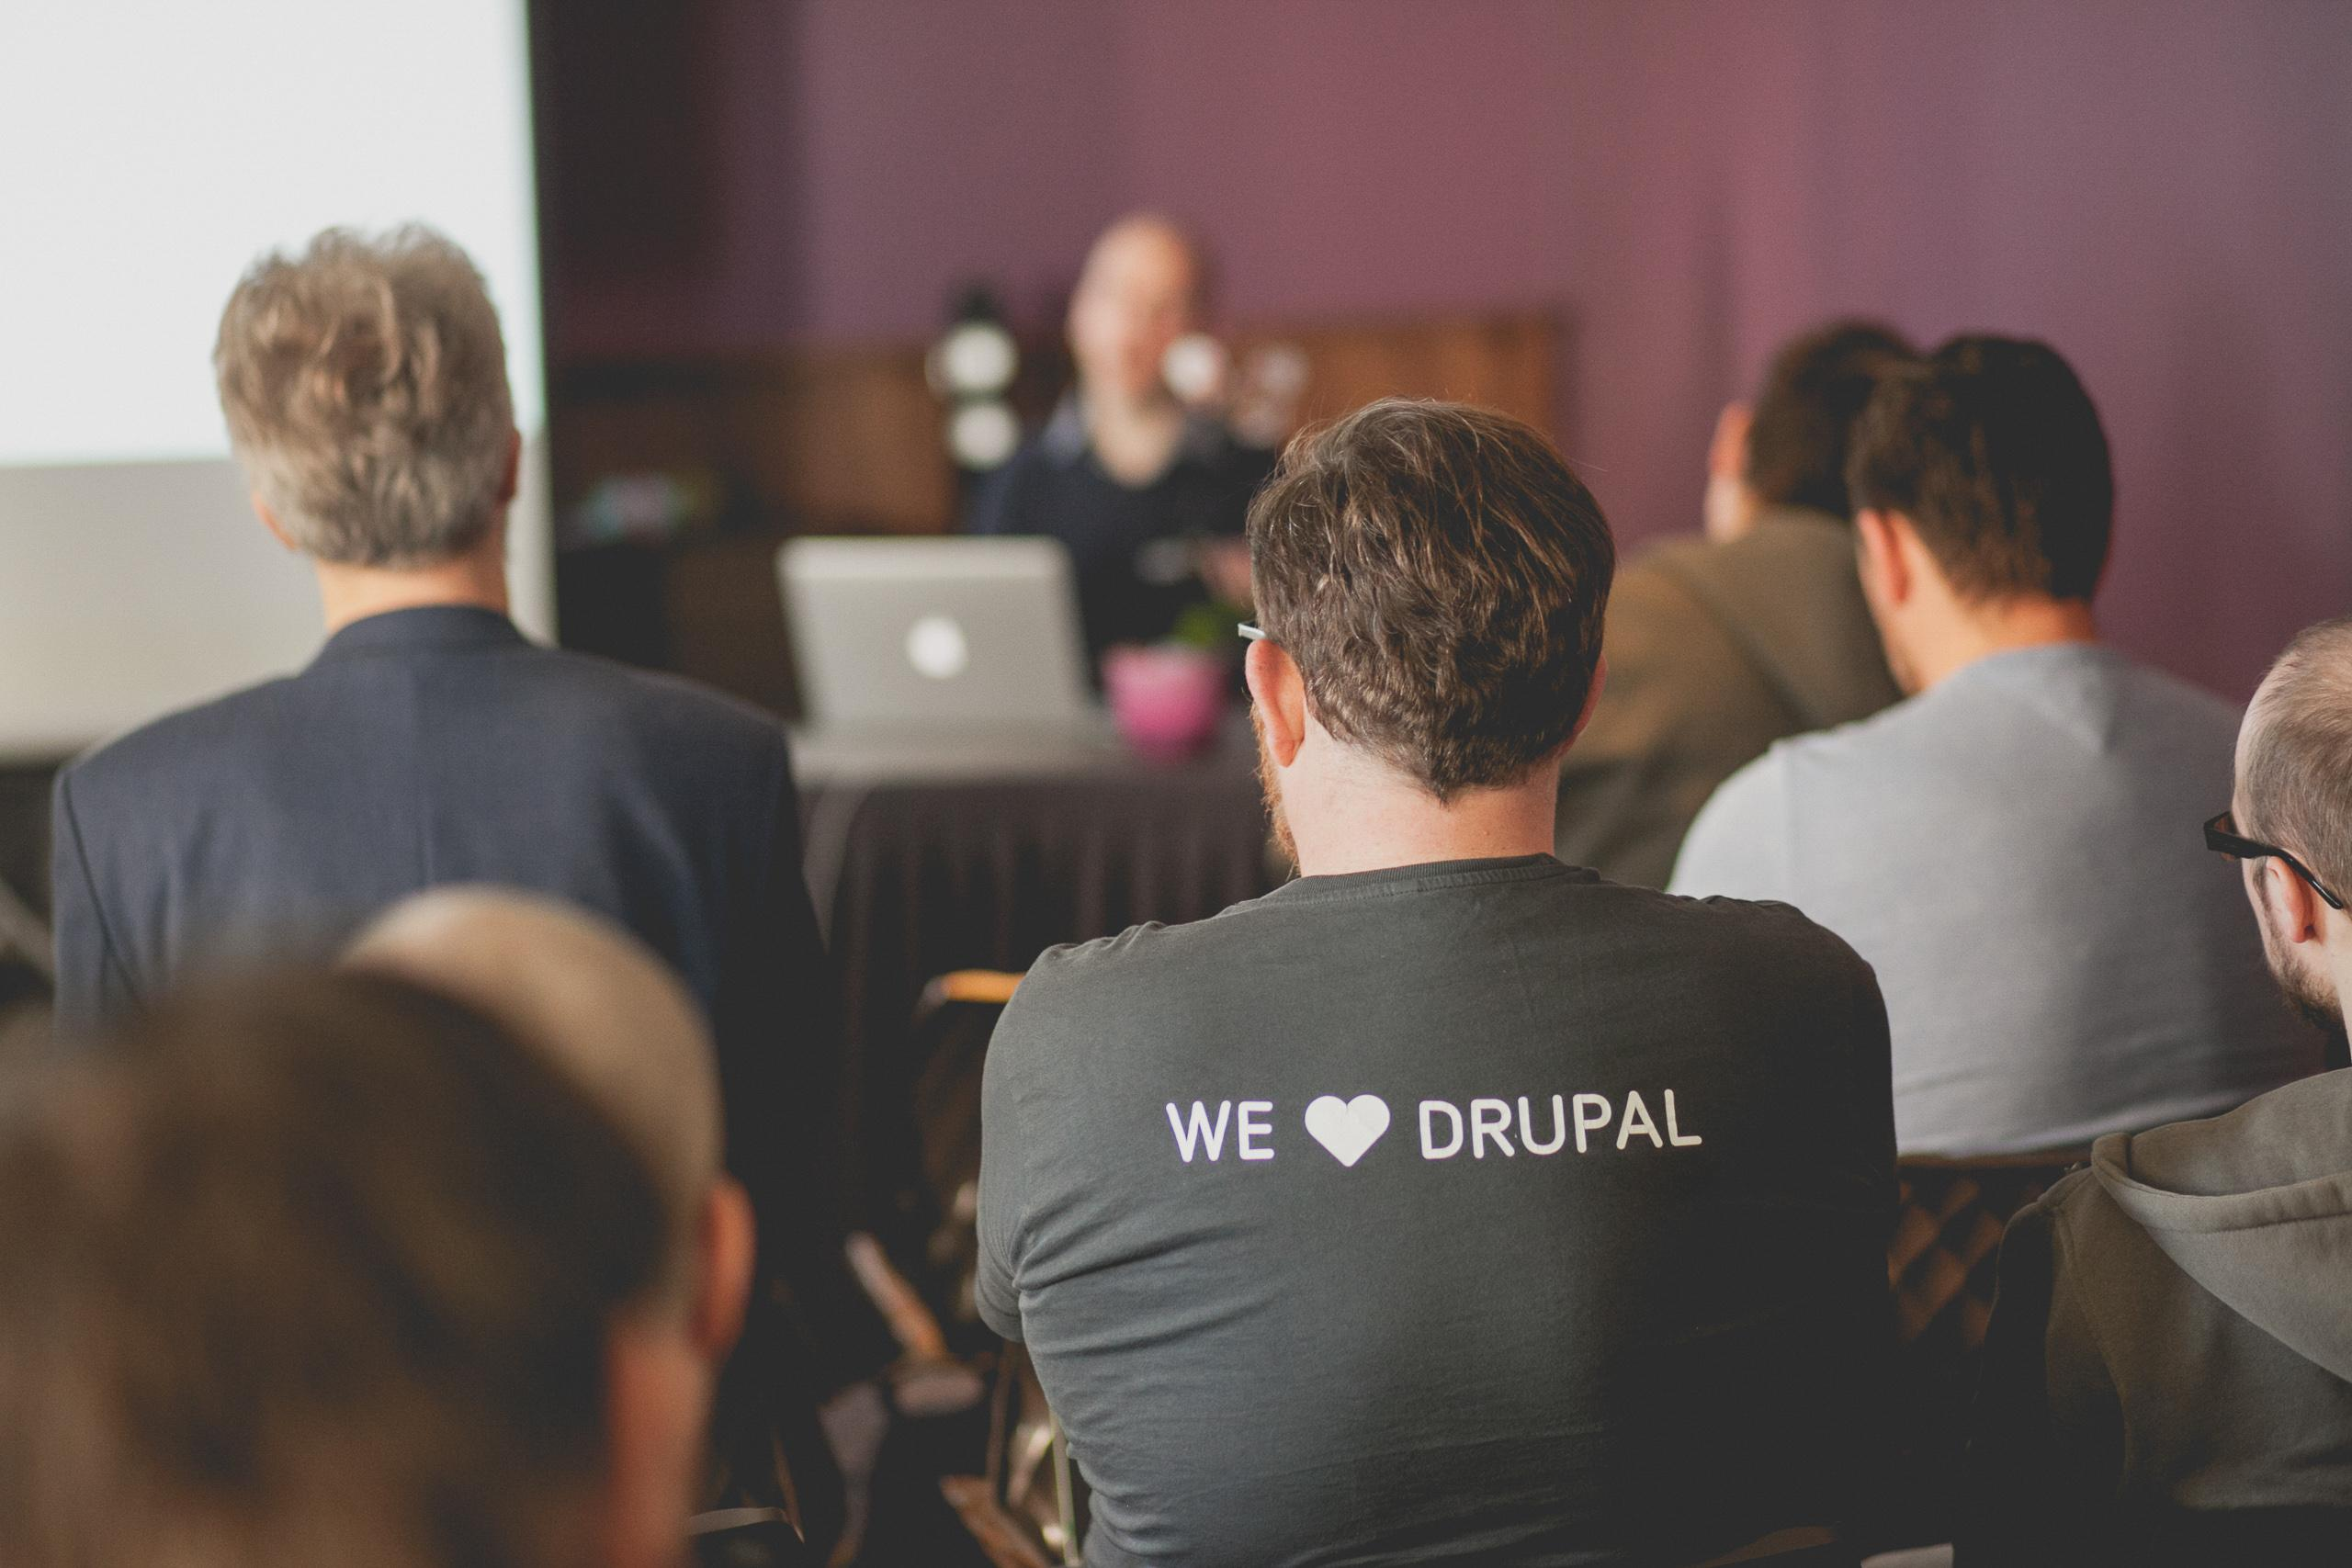 We love Drupal T-shirt